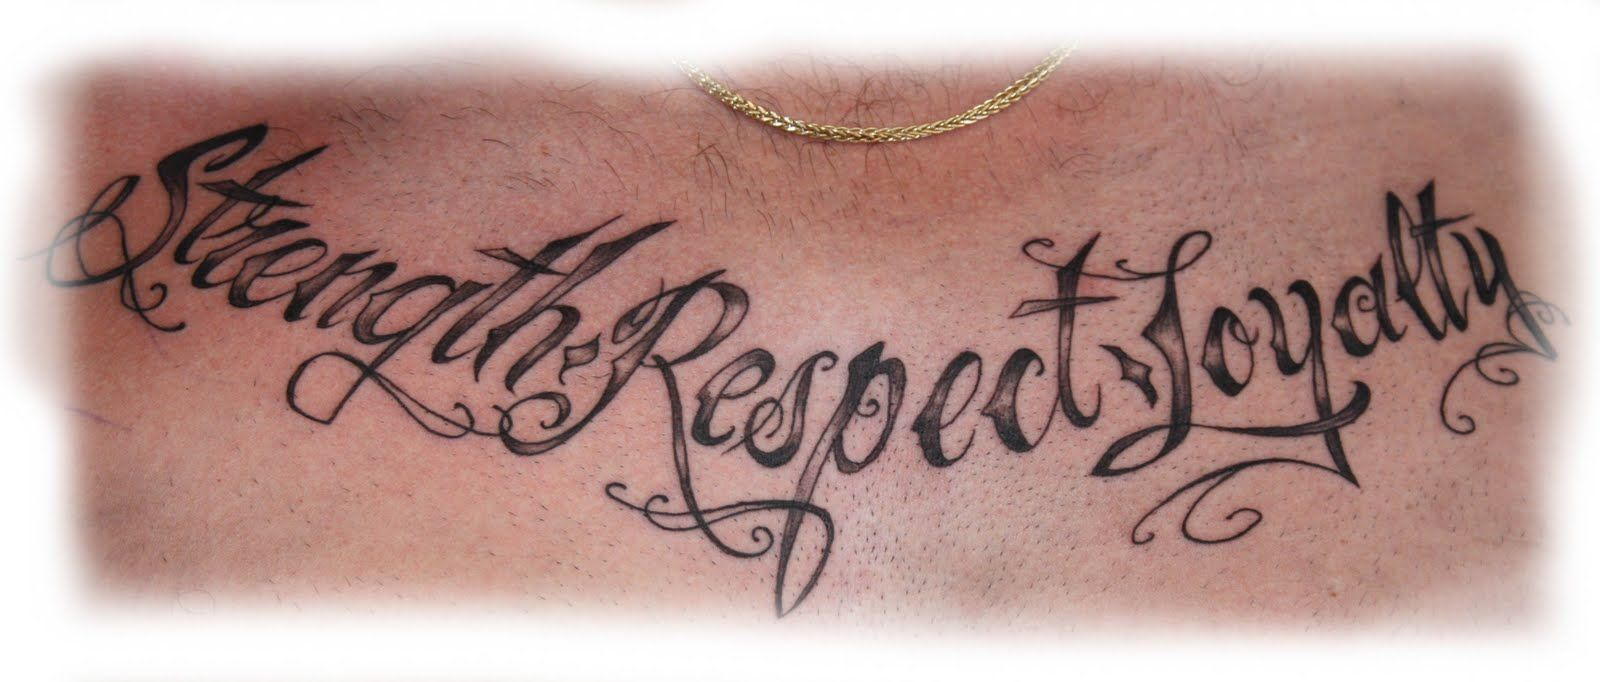 Love Loyalty Respect Tattoo Google Search Respect Tattoo Tattoo Lettering Tattoos